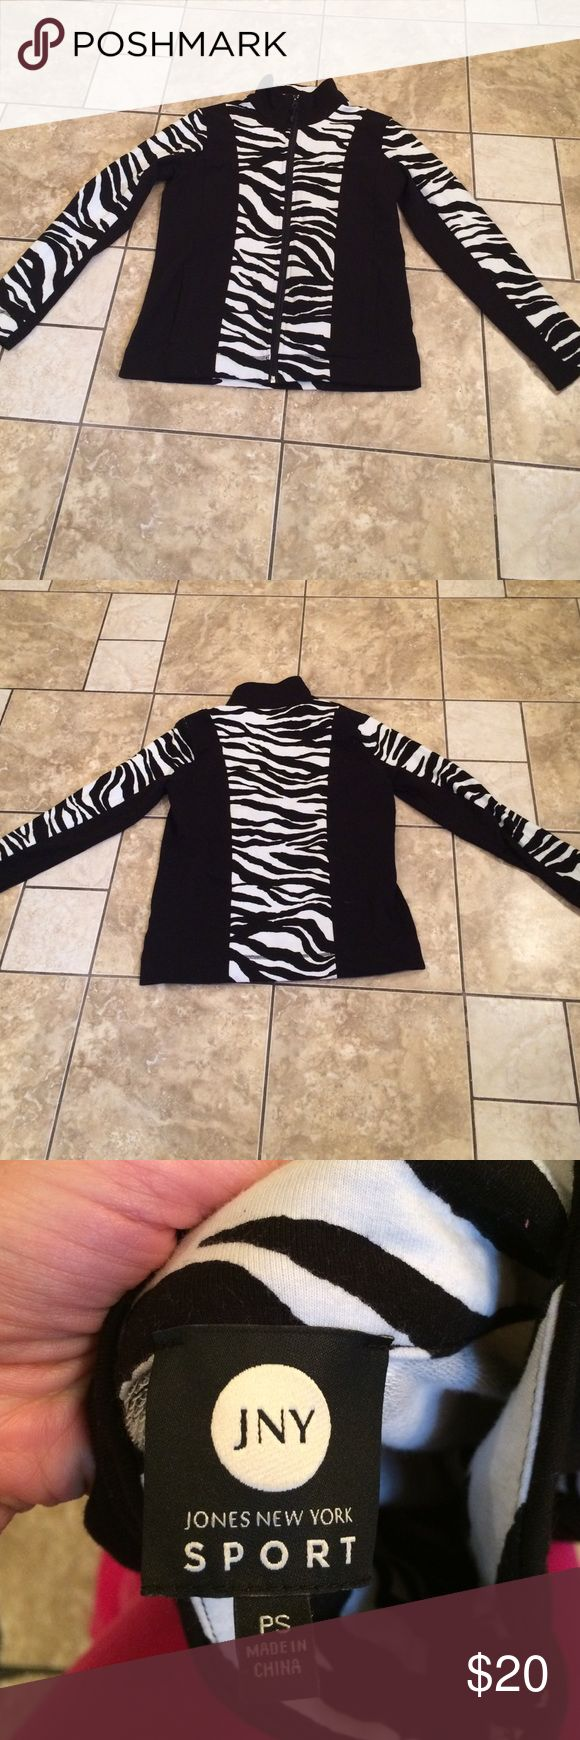 Zip up Jones NY sport sweater This is a zebra print zip up light sweater. I love it paired with leggings for those lazy Sunday afternoons or out running errands Jones New York Sweaters